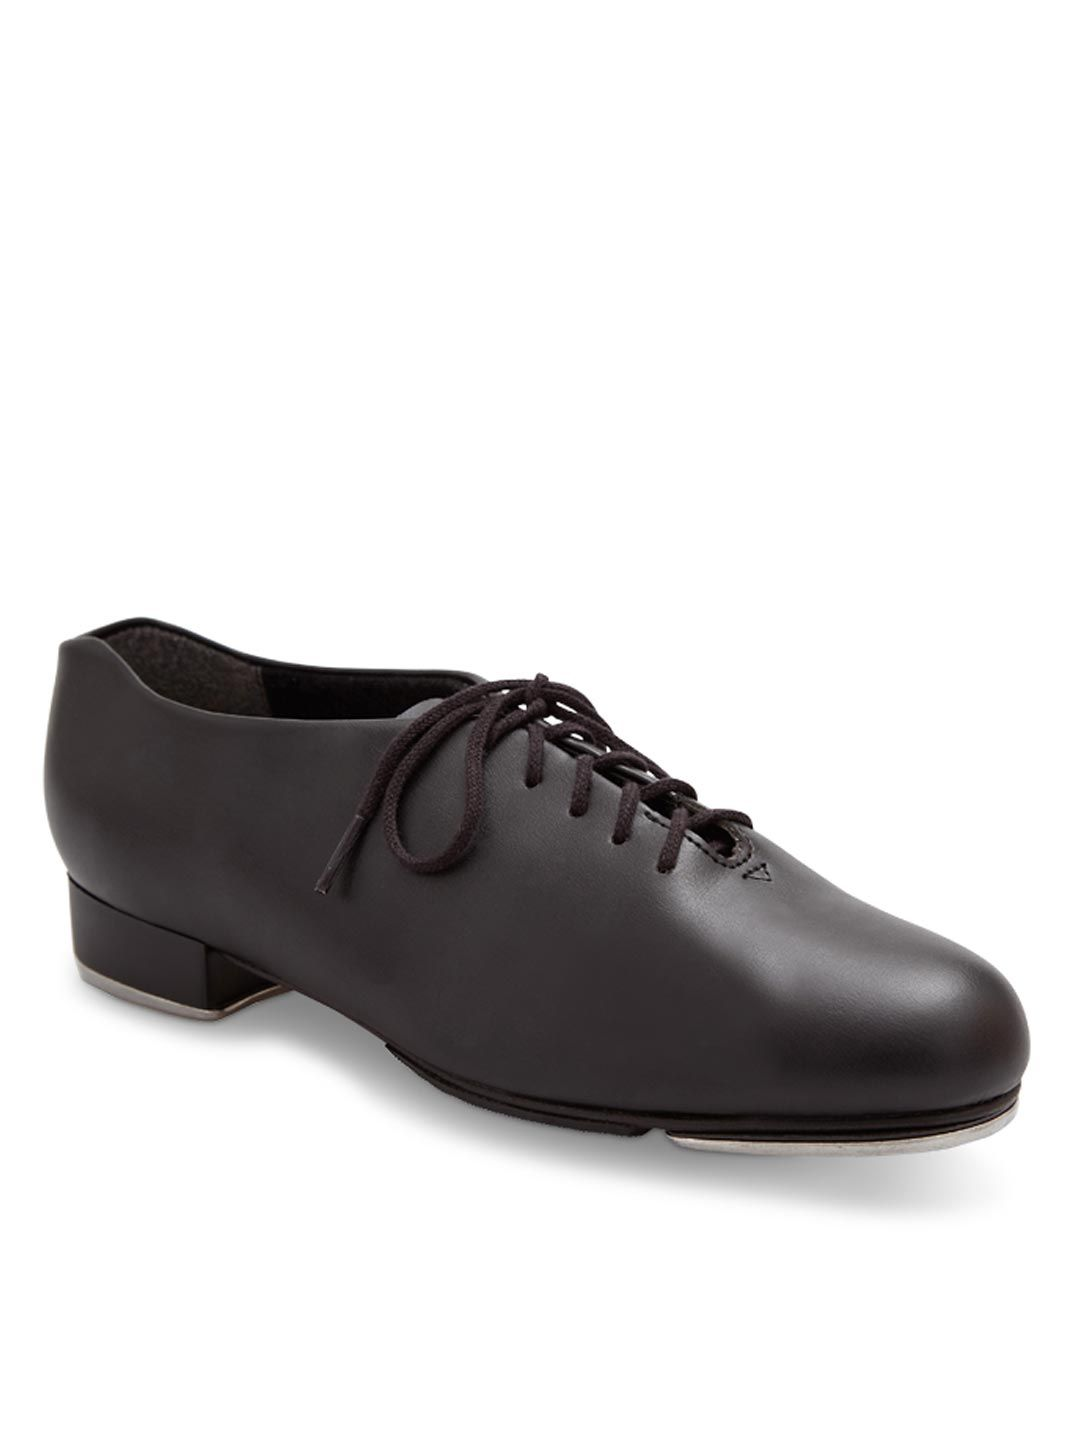 Capezio Adult Oxford Style Tic Tap Toe Tap Shoes